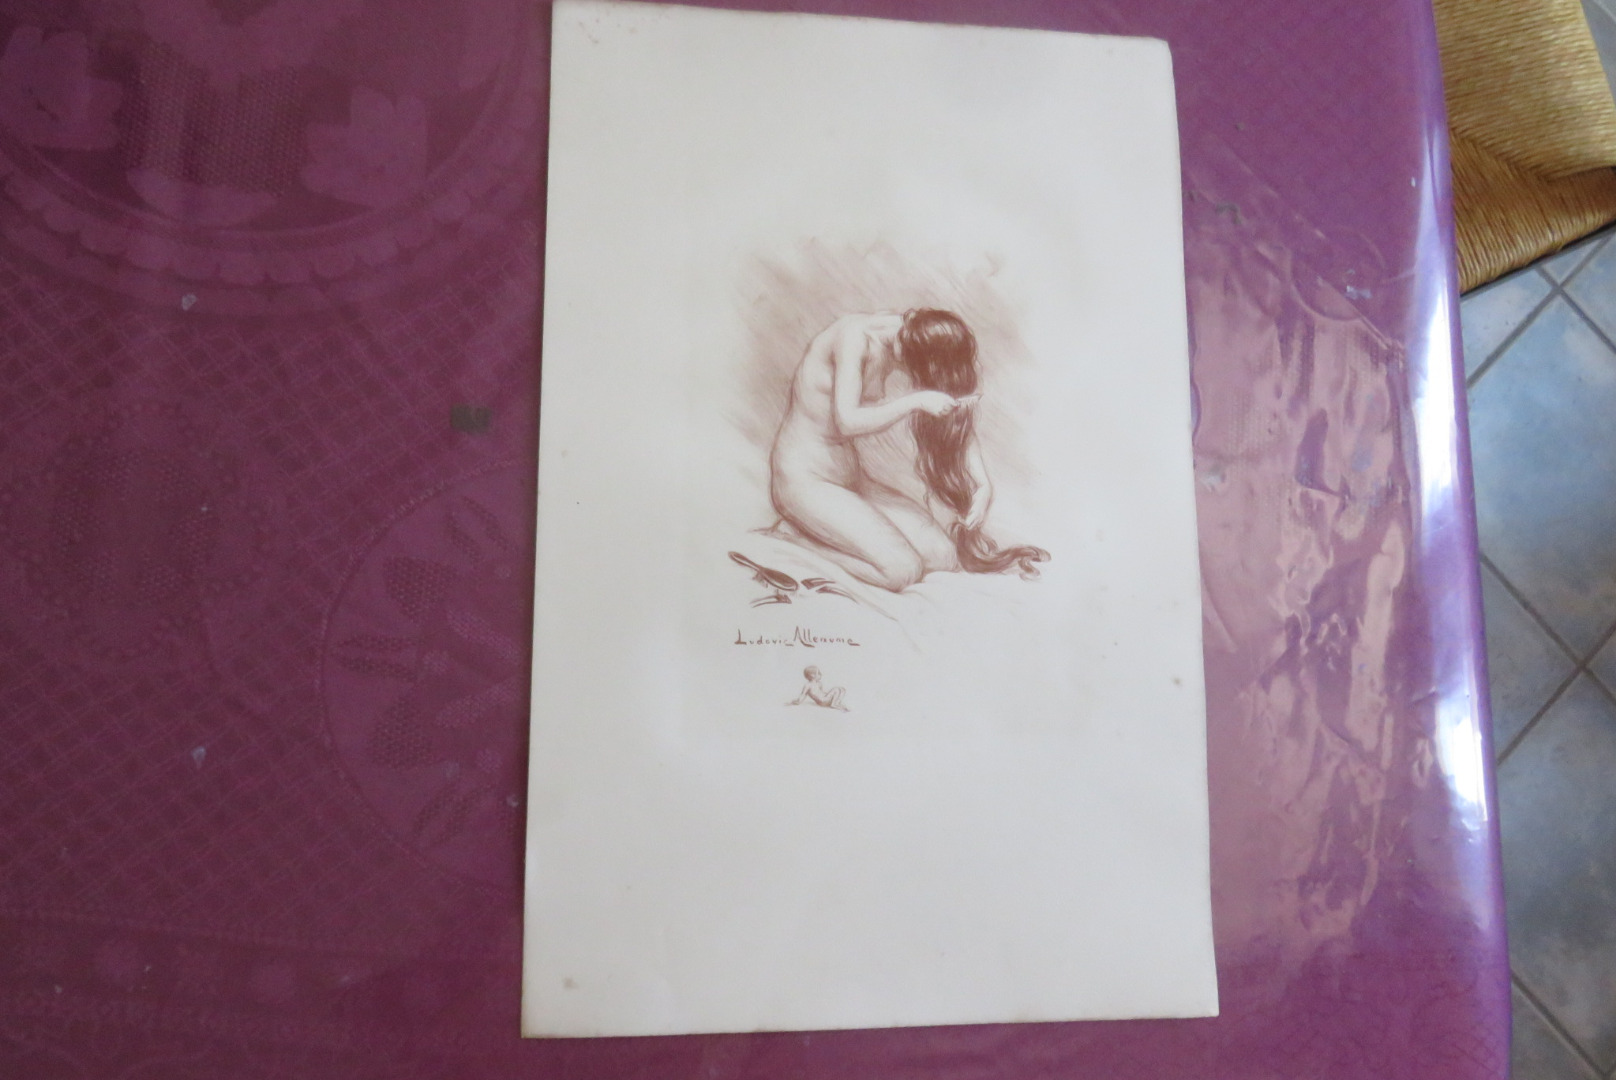 LITHOGRAPHY SIGNED LUDOVIC ALLEAUME